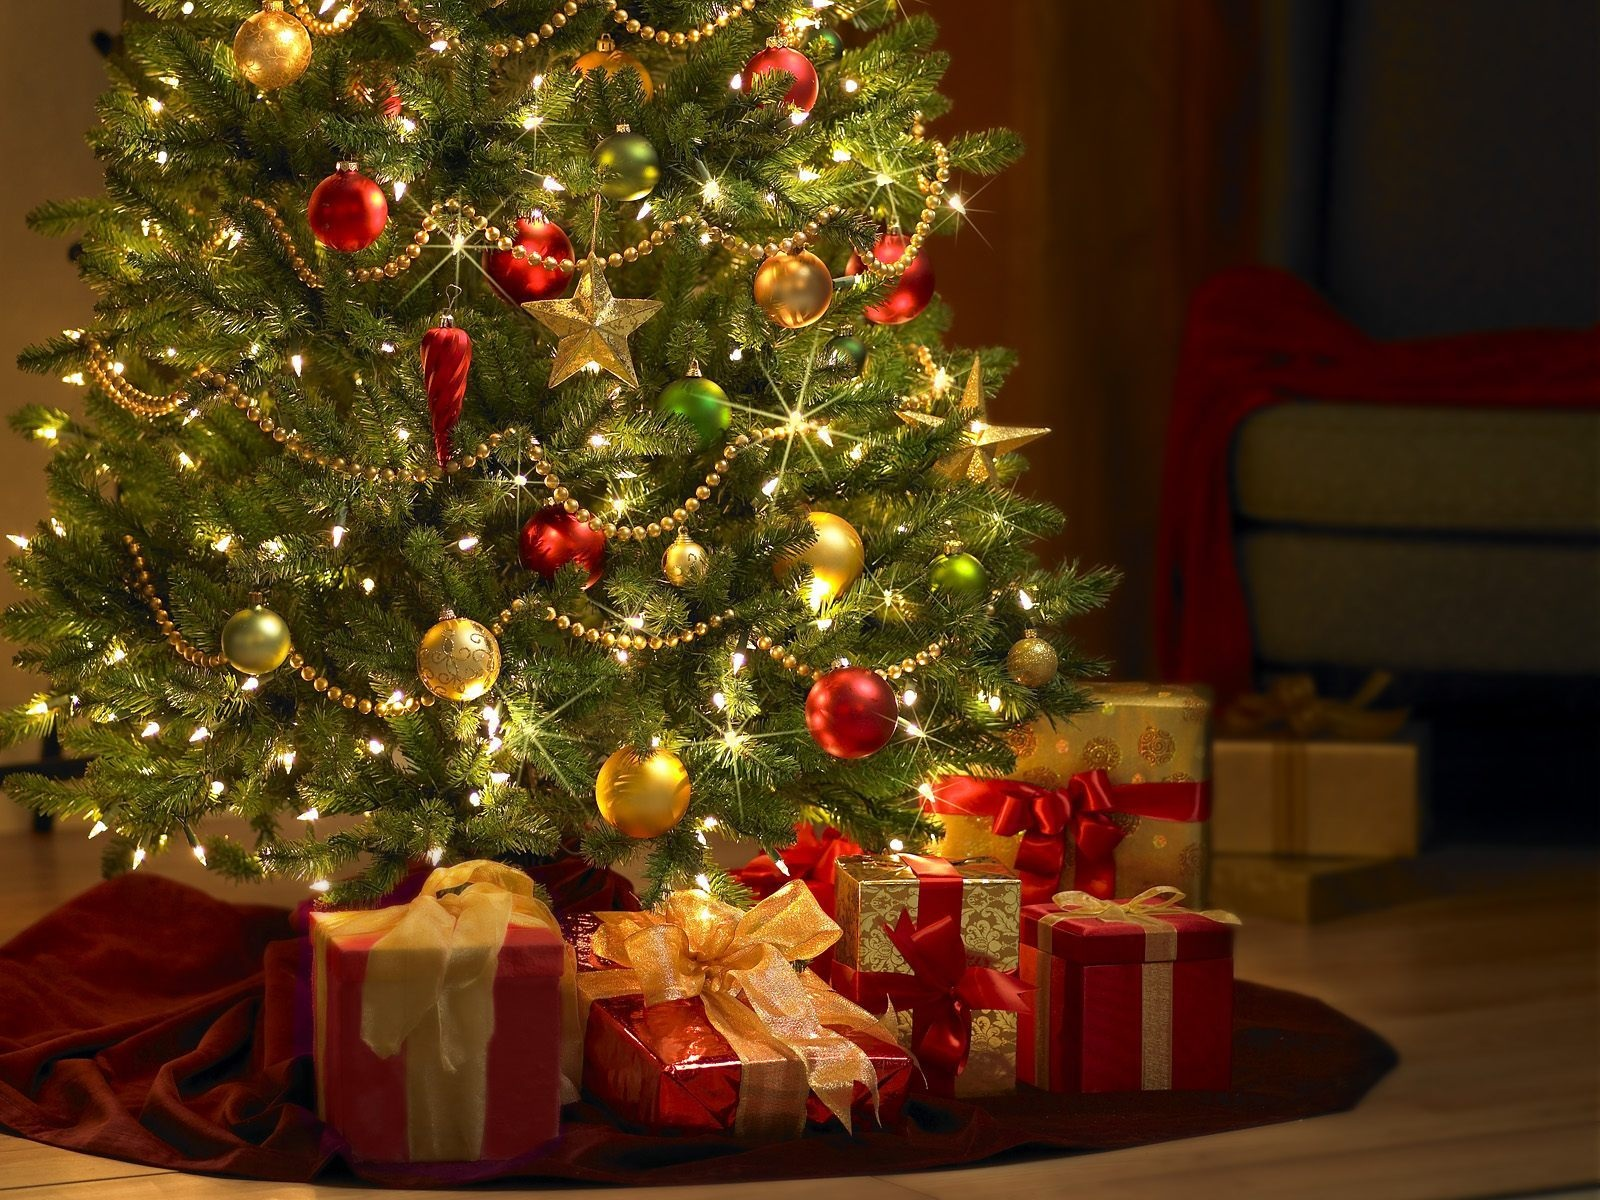 http://filearchive.cnews.ru/img/zoom/2012/12/20/presents_under_the_tree.jpg